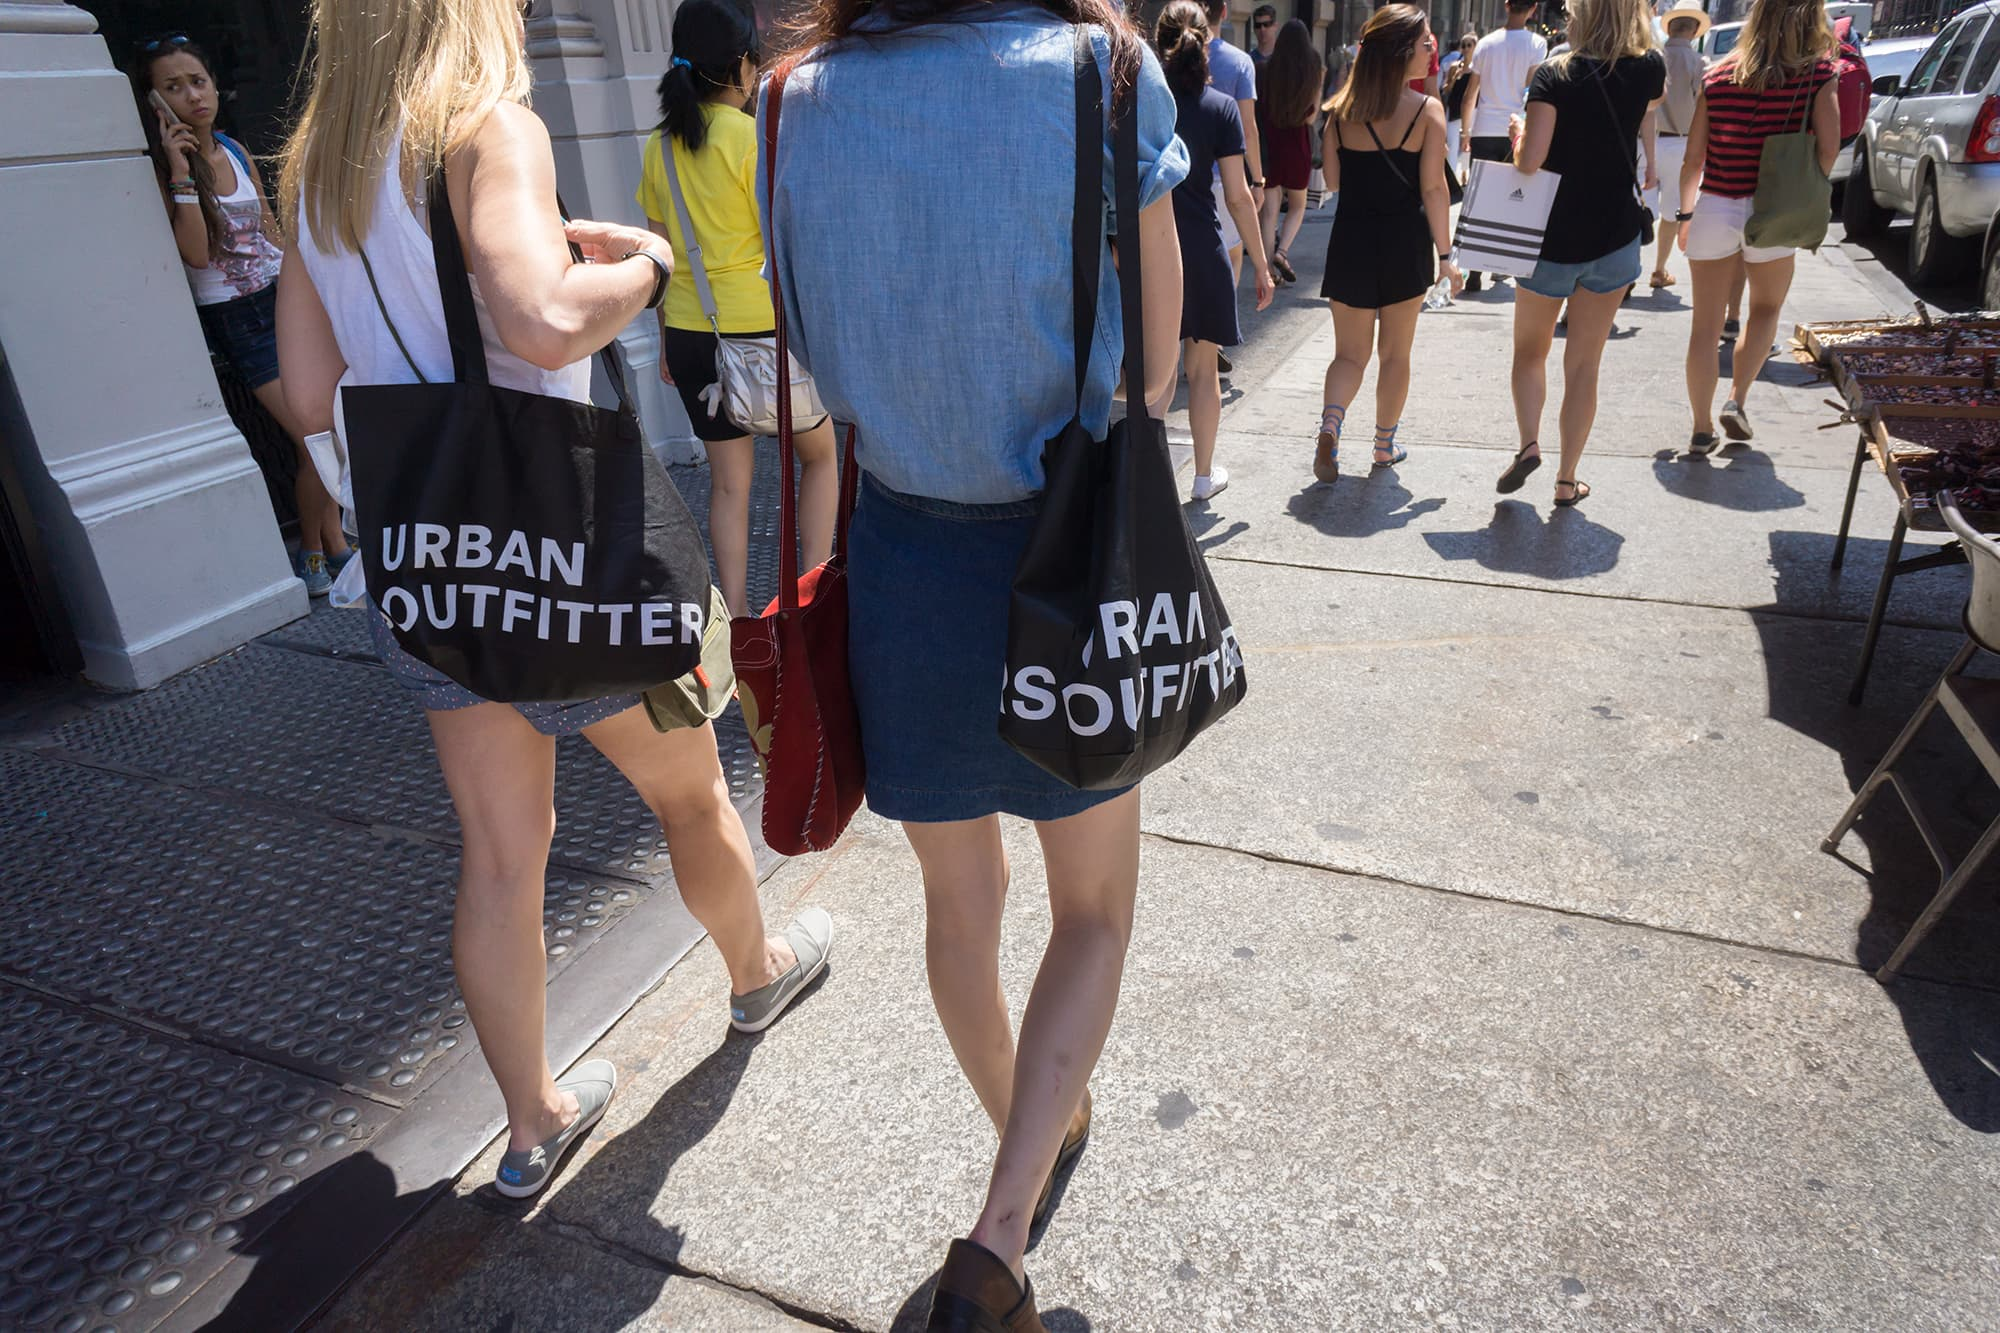 urban-outfitters-urbn-shares-tumble-as-2020-holiday-sales-disappoint